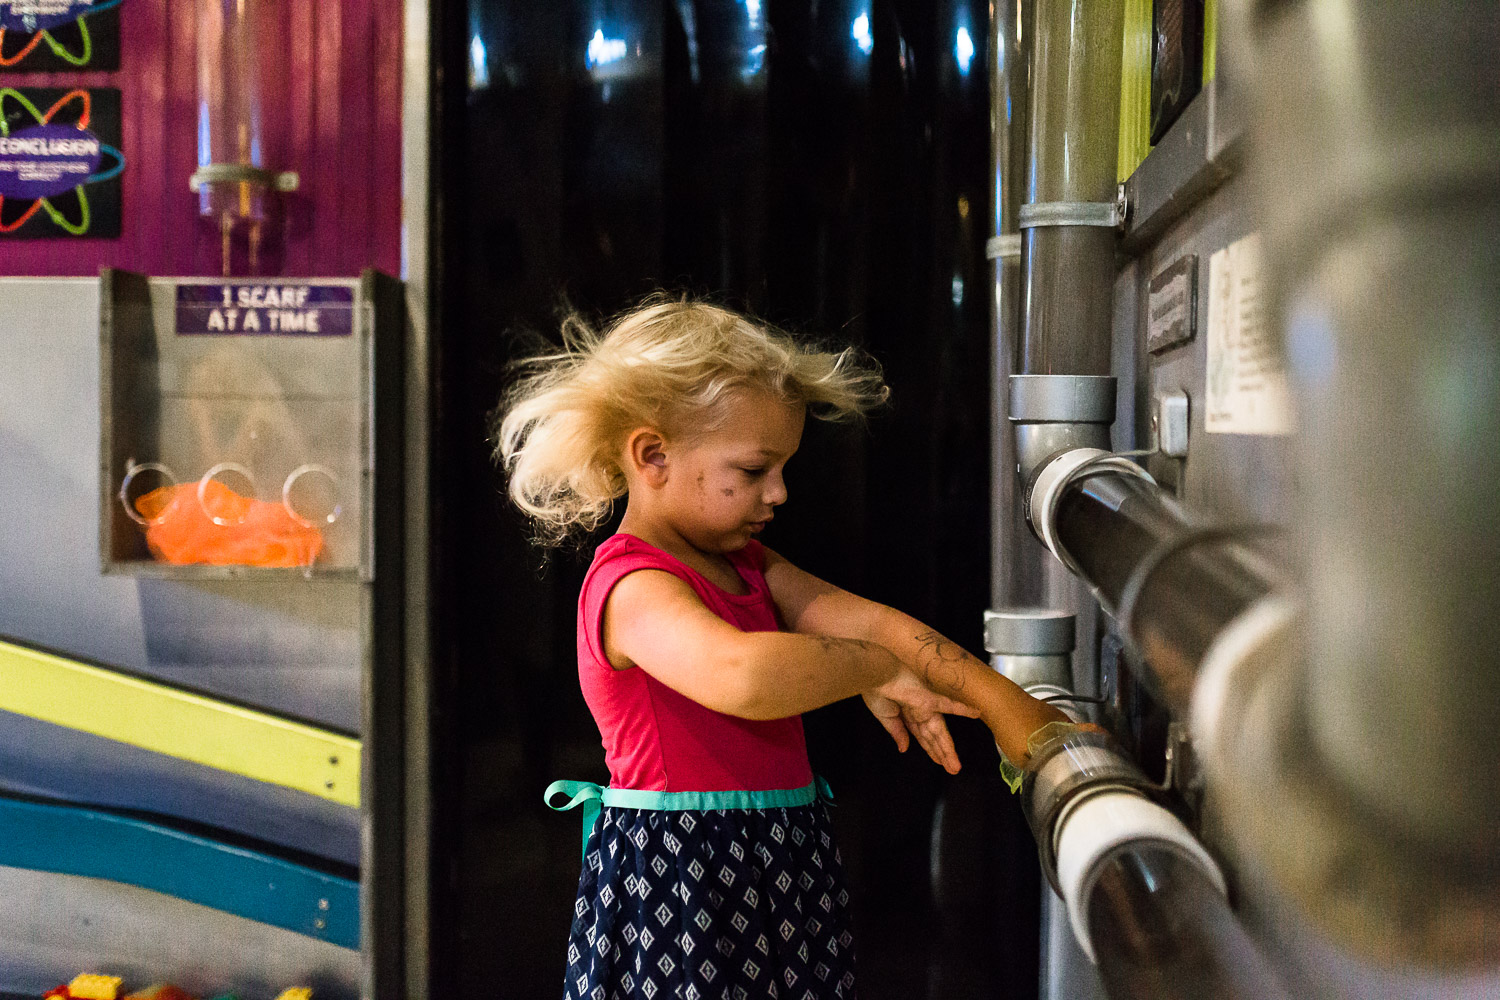 Girl with hair blowing at children's museum